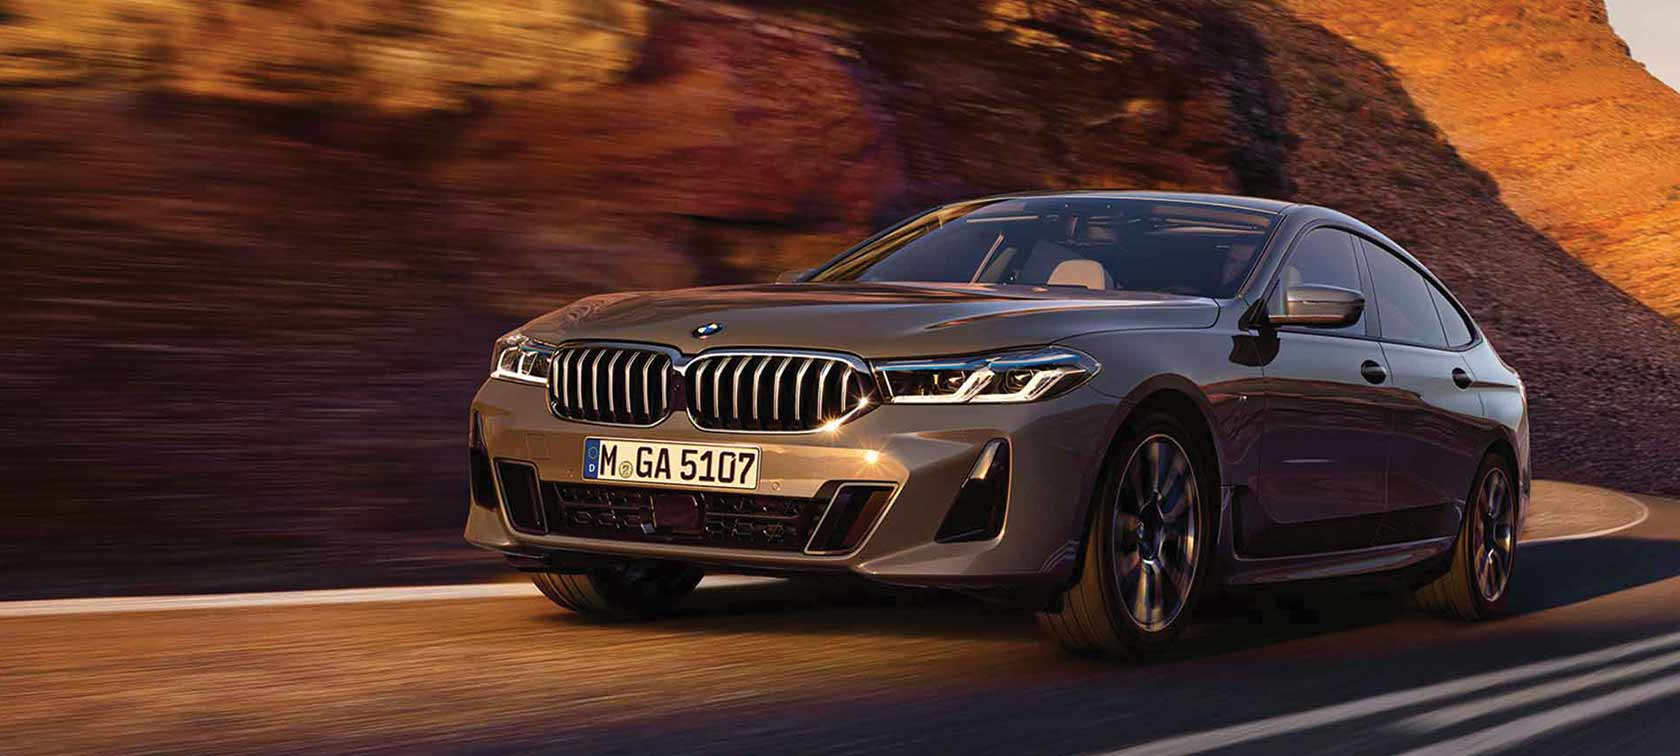 The BMW 6GT